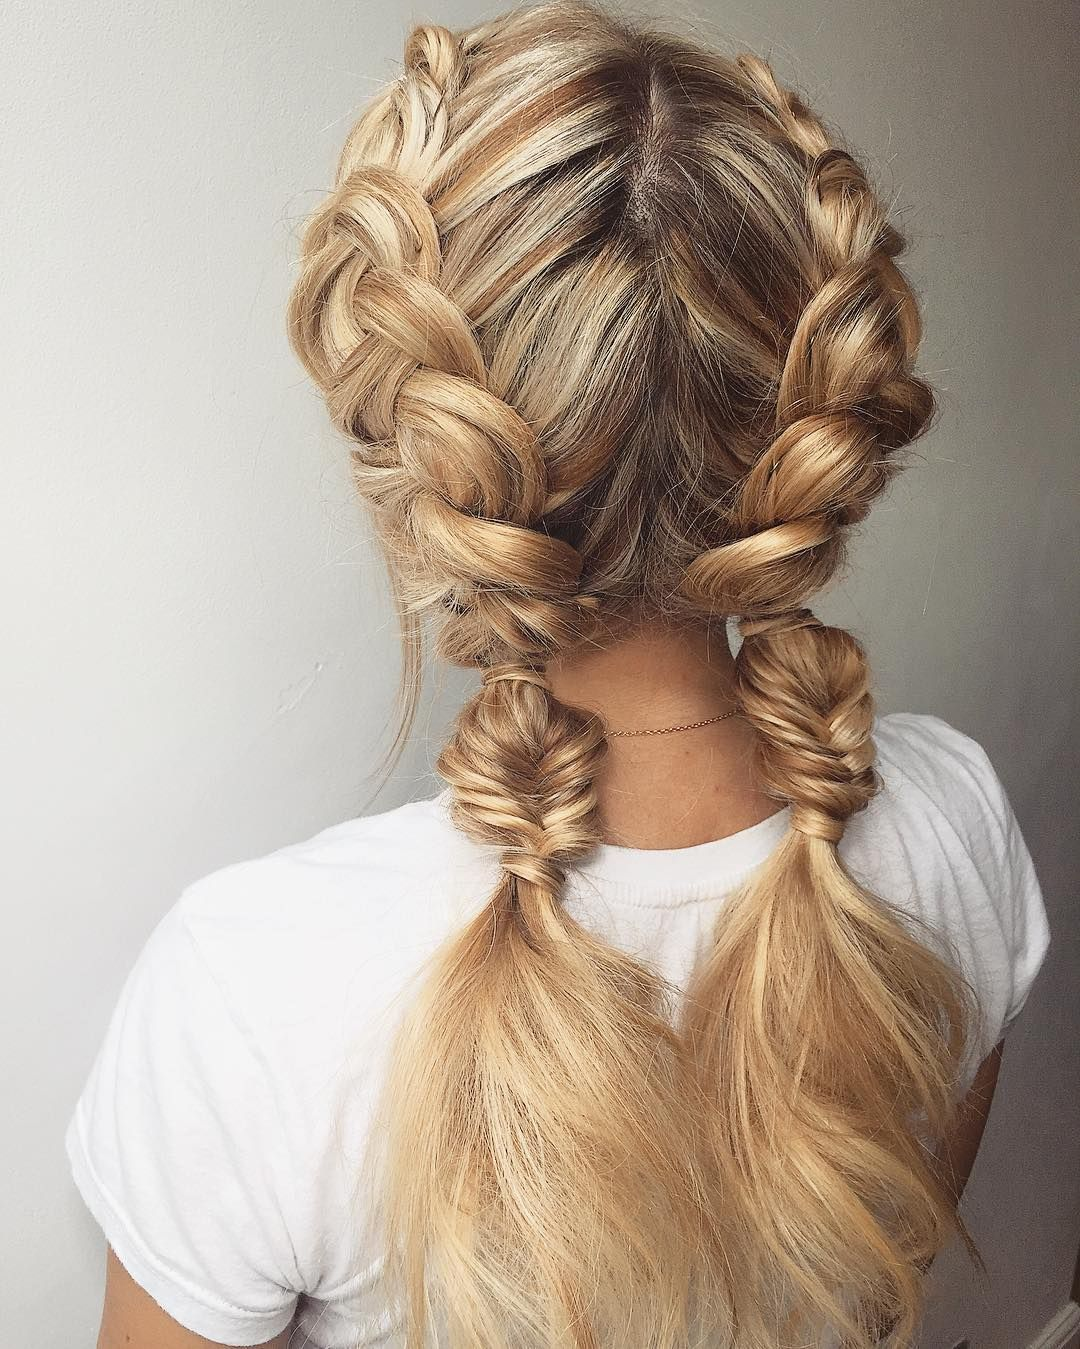 Double Dutch Finished with two Chinese ladders braids hairstyle : hairstyle inspiration - braid hairstyle , braided ponytails, braids #hairstyle #braids #hair #weddinghairstyle #Hairstyle #Braid #BraidIdeas #BraidInspo #BraidedHair #Braidstyles